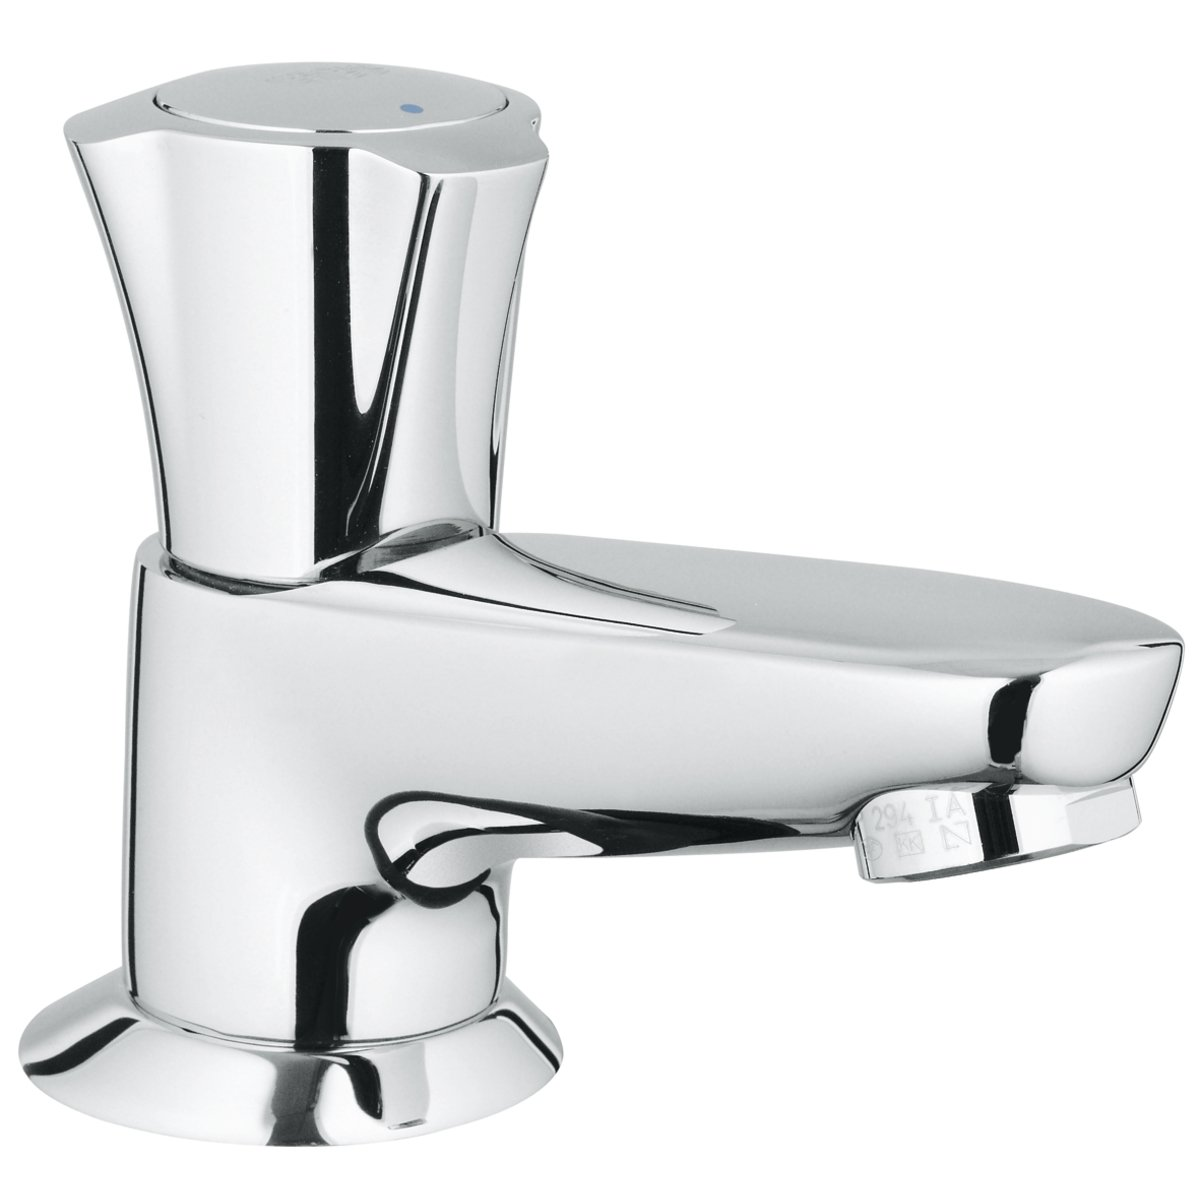 grohe costa l robinet lave mains bas chrome 20404001. Black Bedroom Furniture Sets. Home Design Ideas